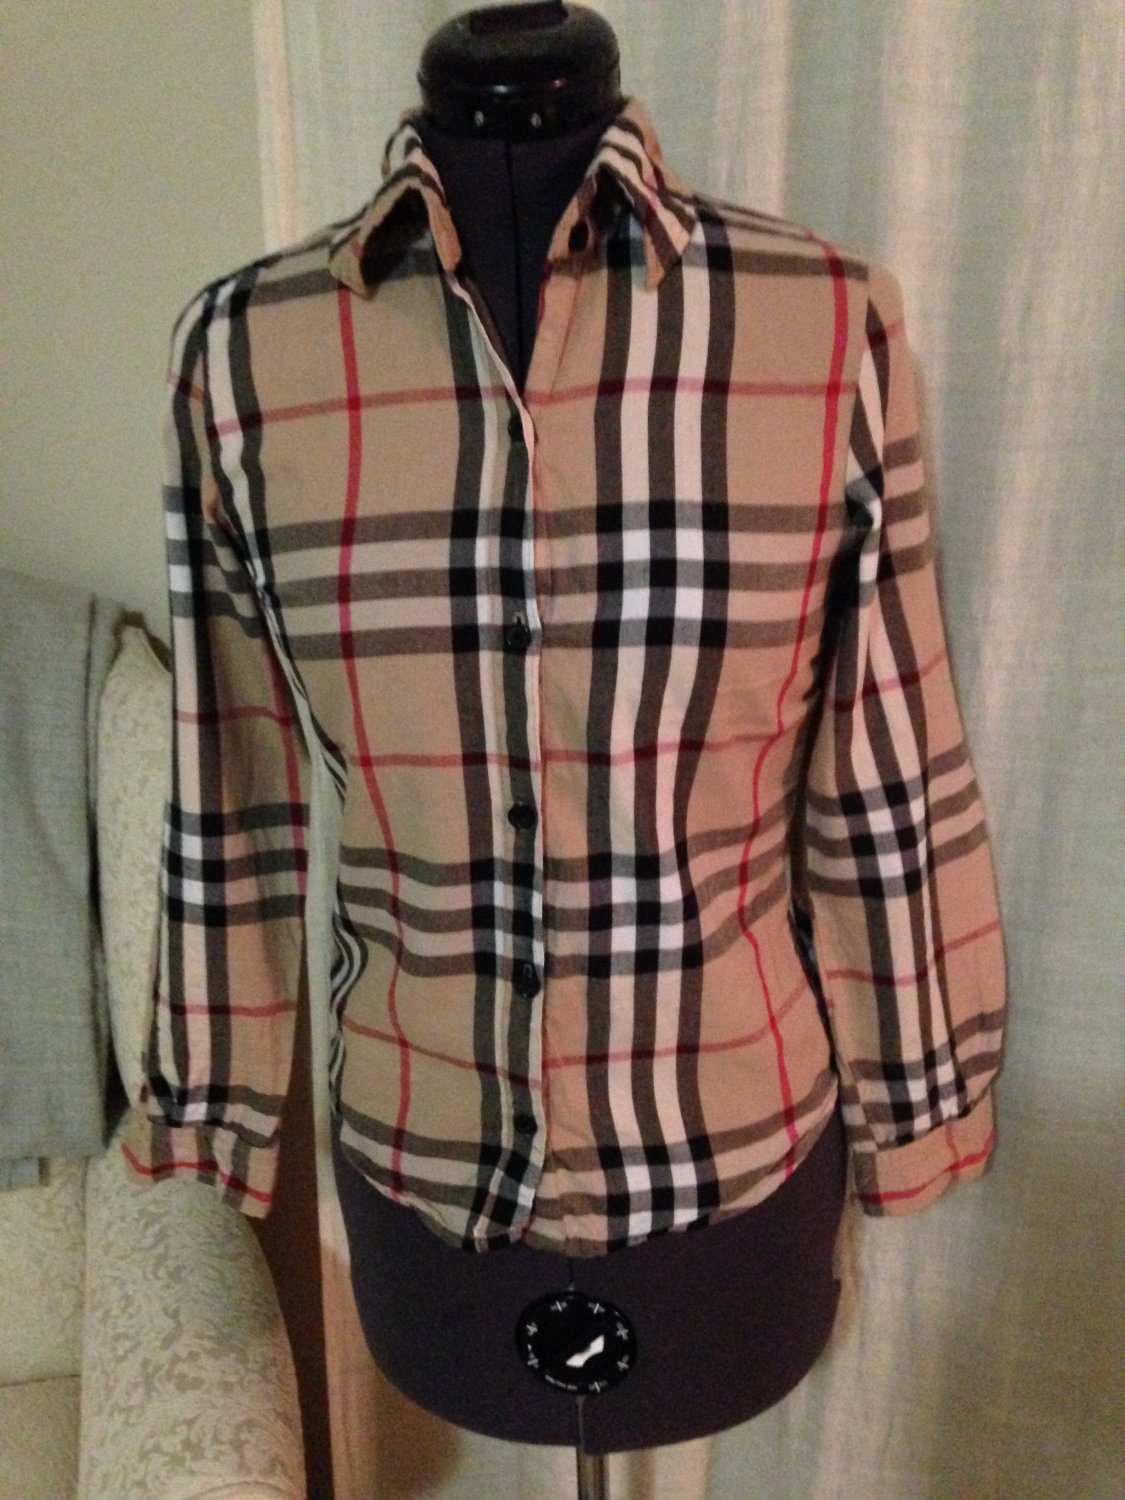 Burberry Style Blouse, Anthropologie, Size XS